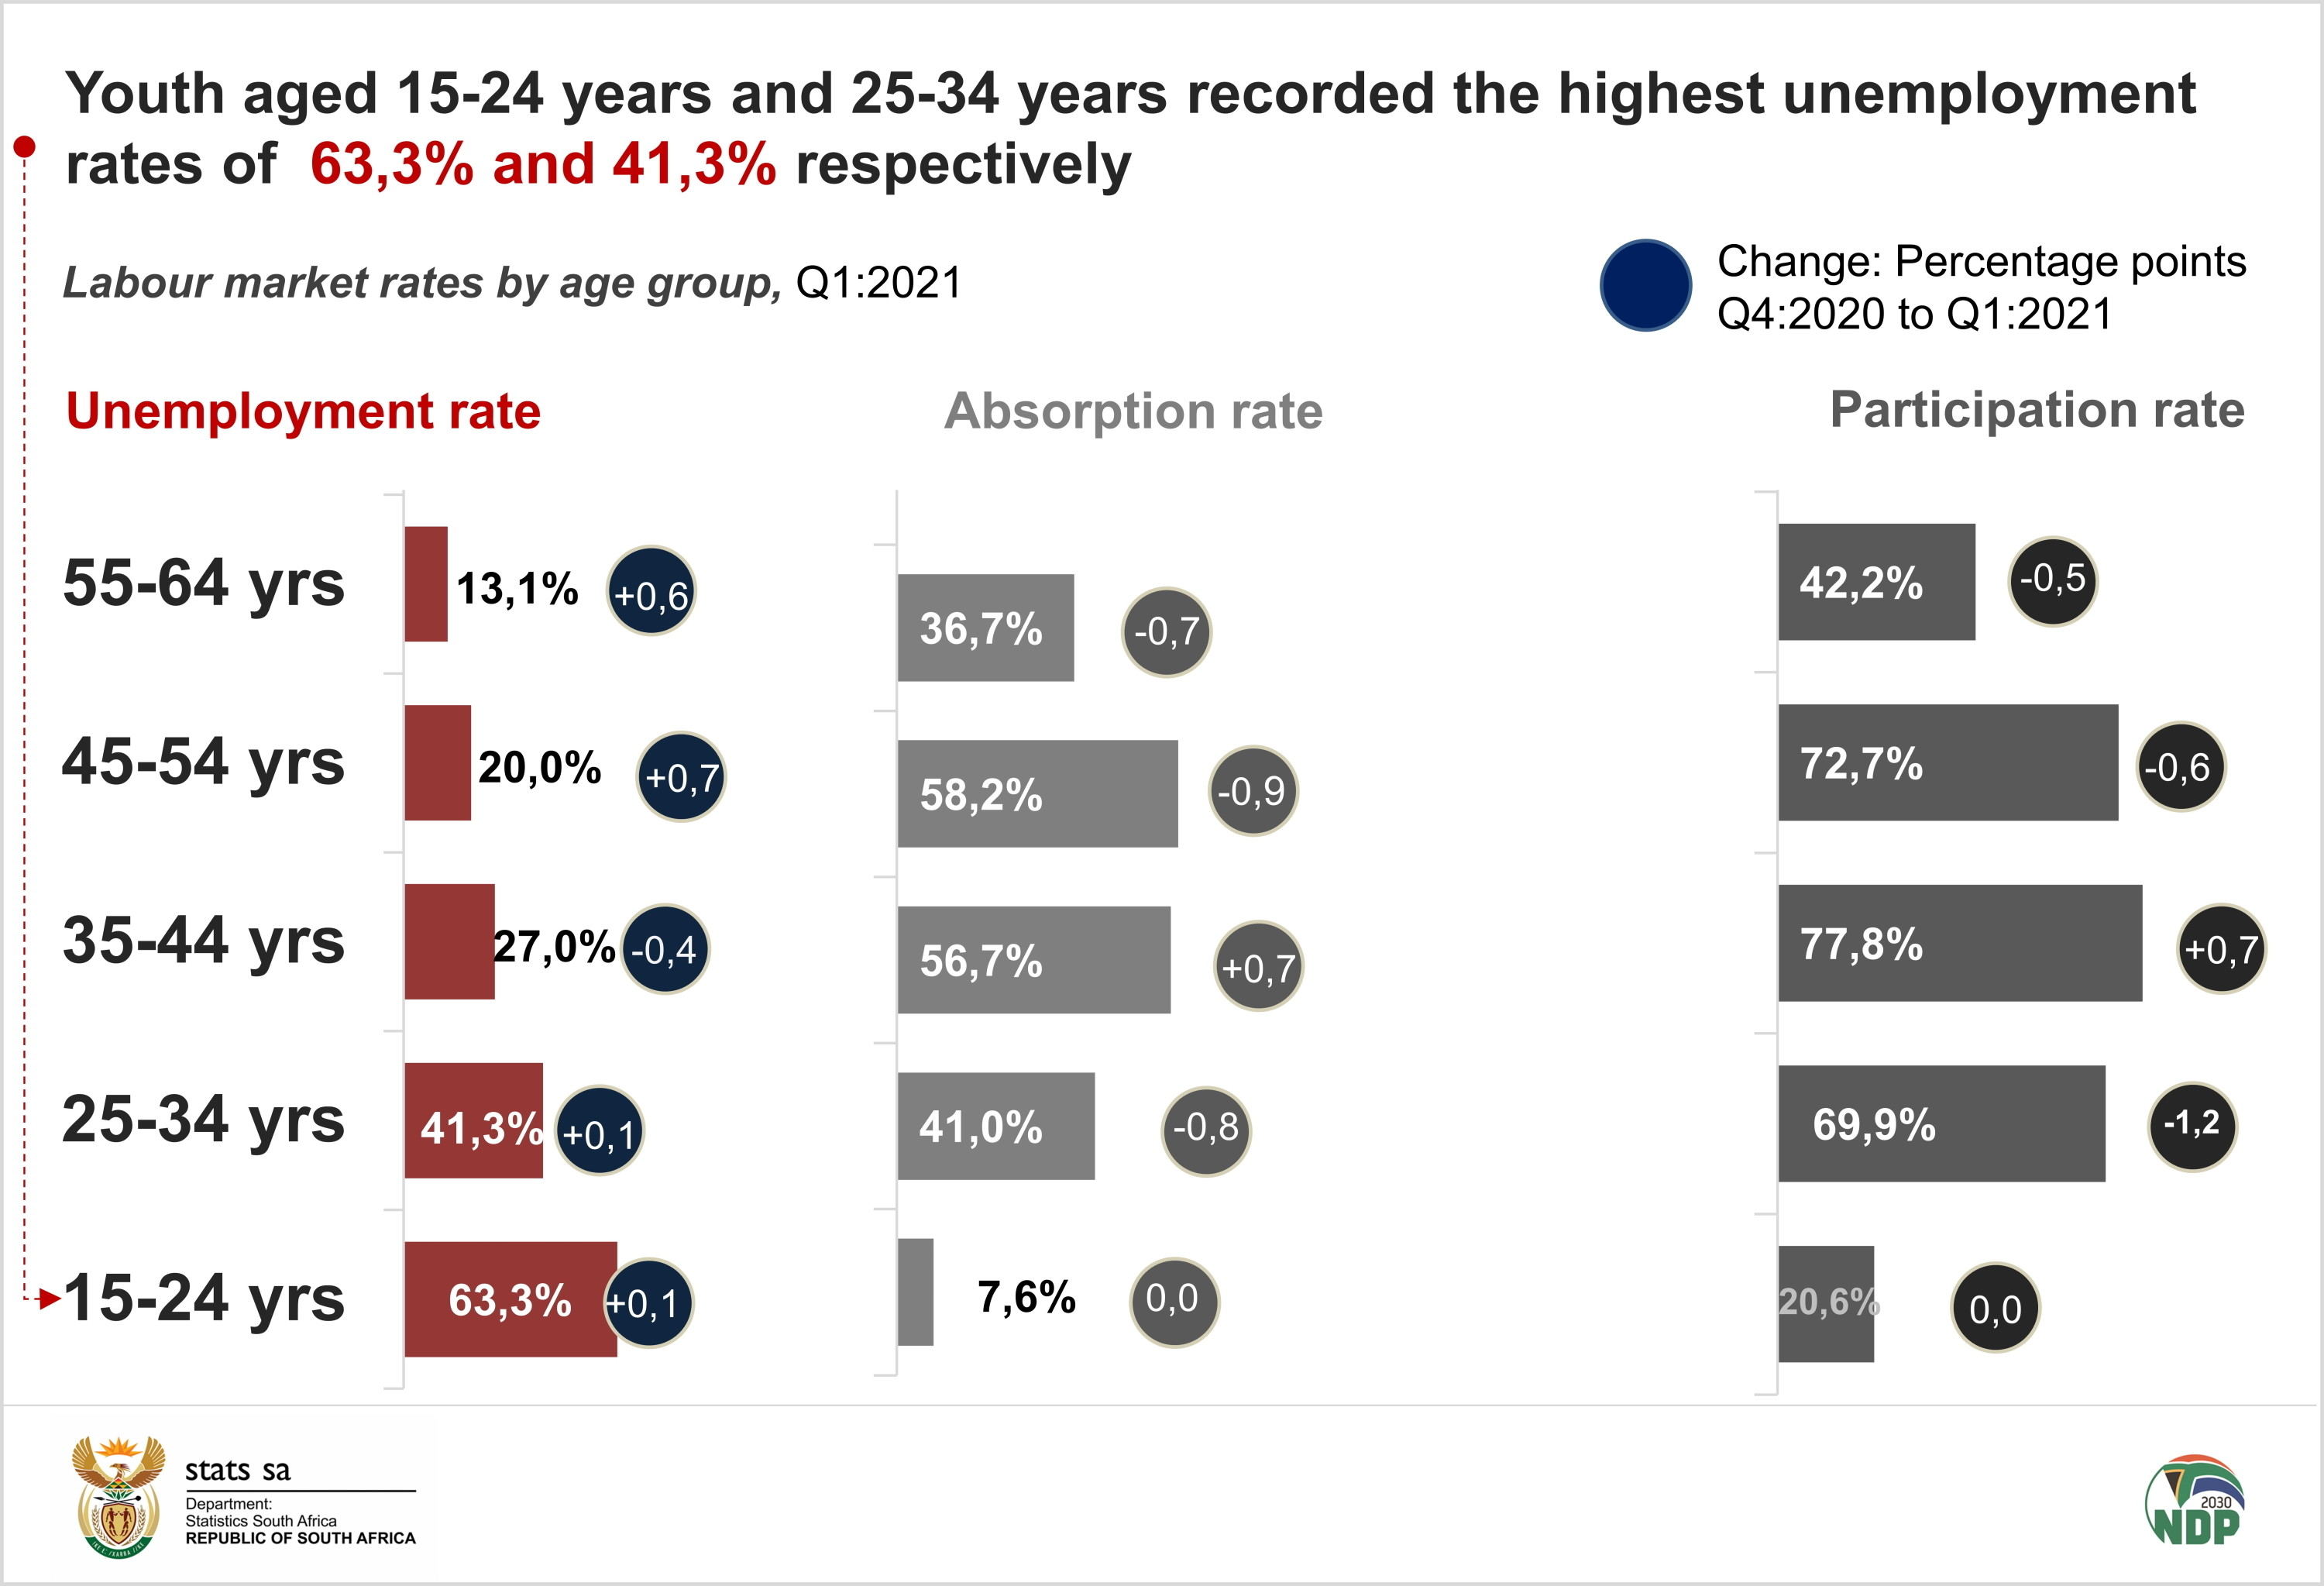 Youth aged 15-24 years and 25-34 years recorded the highest unemployment rates